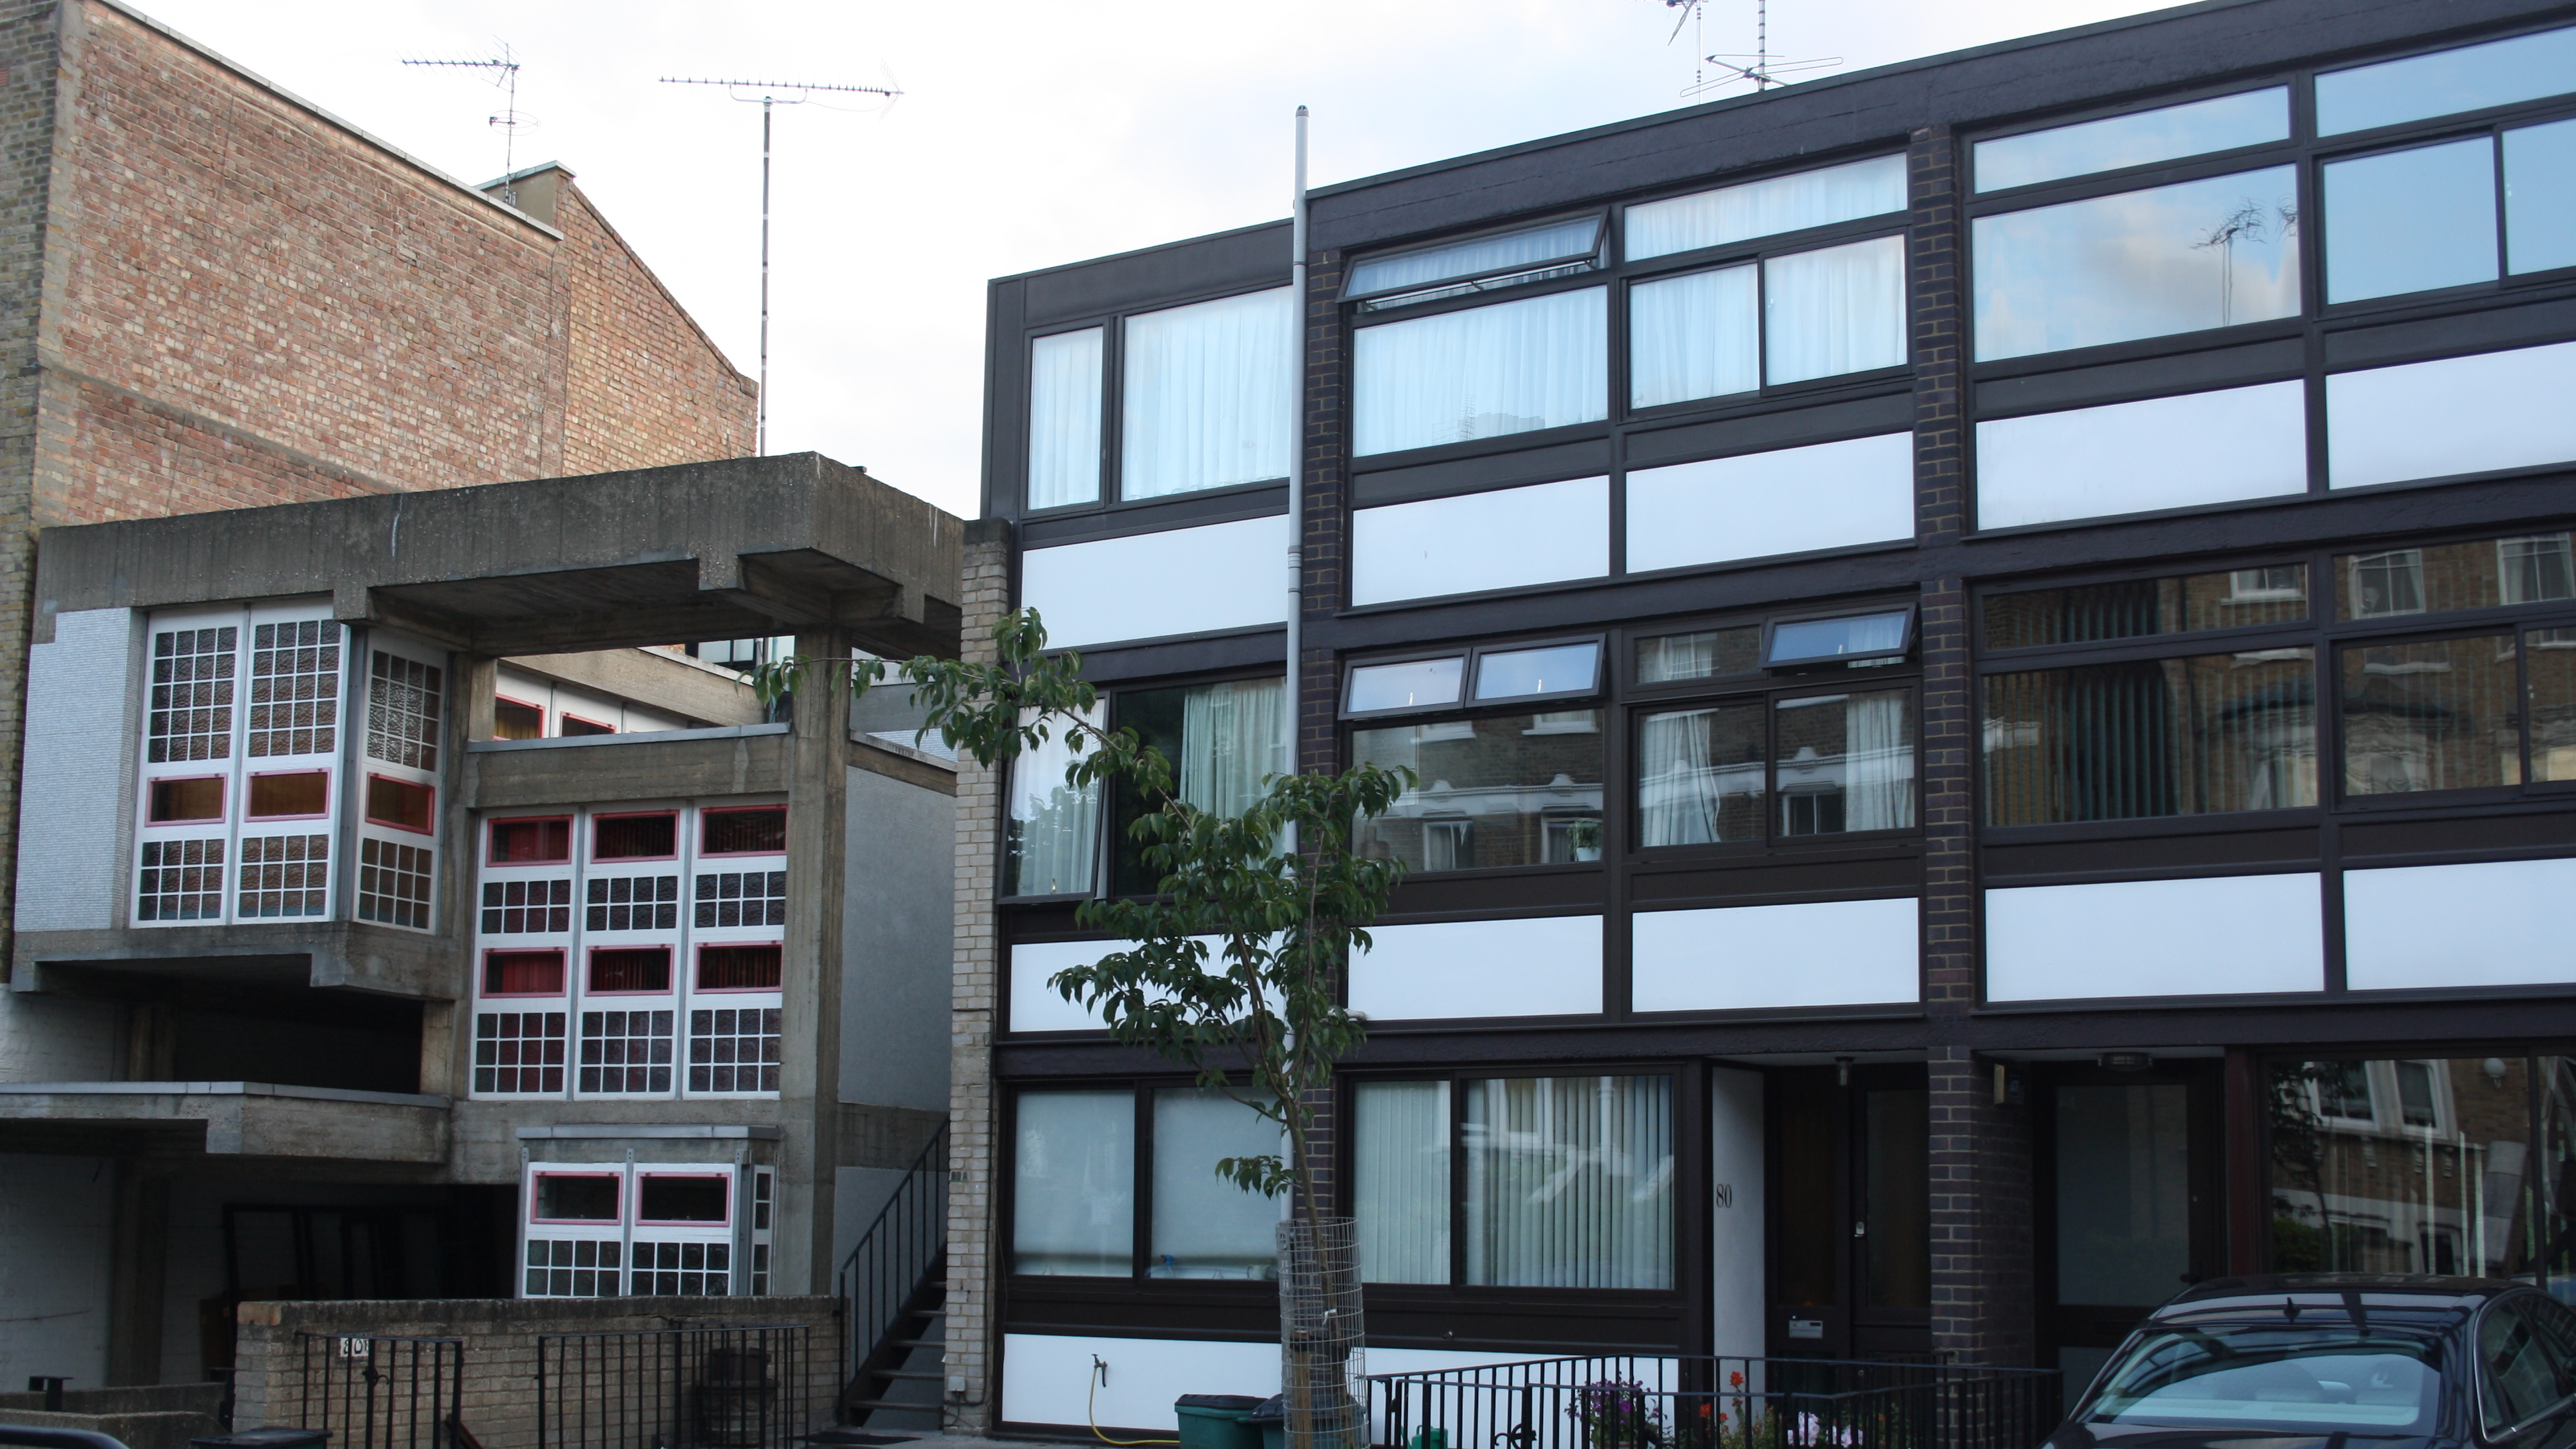 High Quality Central Hill Estate, Crystal Palace SE19 | Crystal Palace, Palace And  Architecture